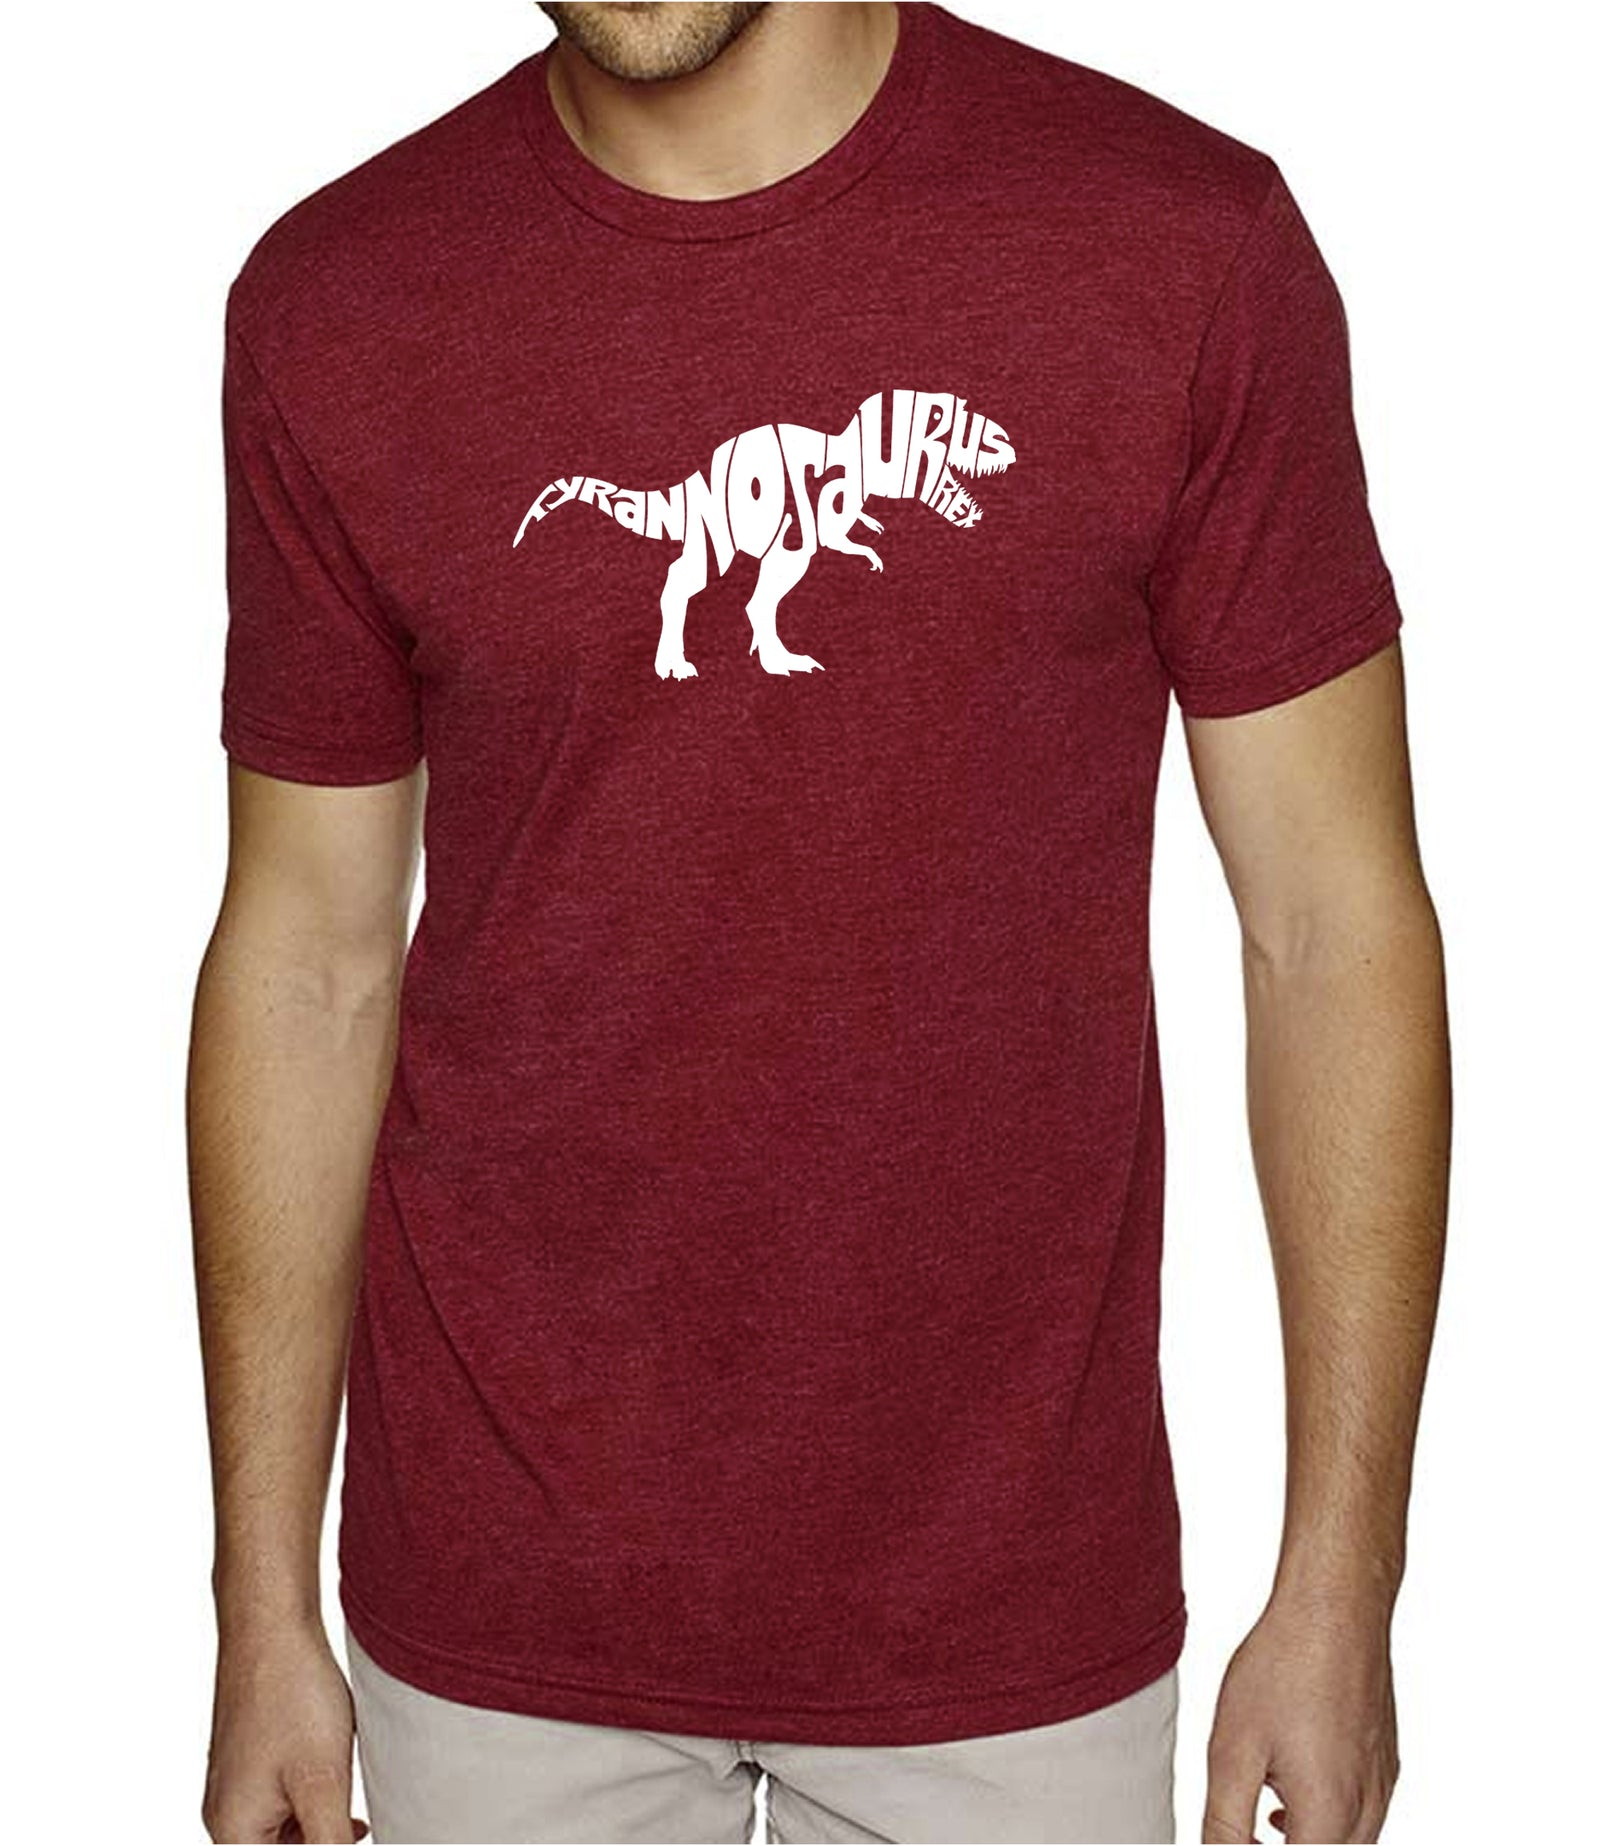 Men's Premium Blend Word Art T-shirt - TYRANNOSAURUS REX